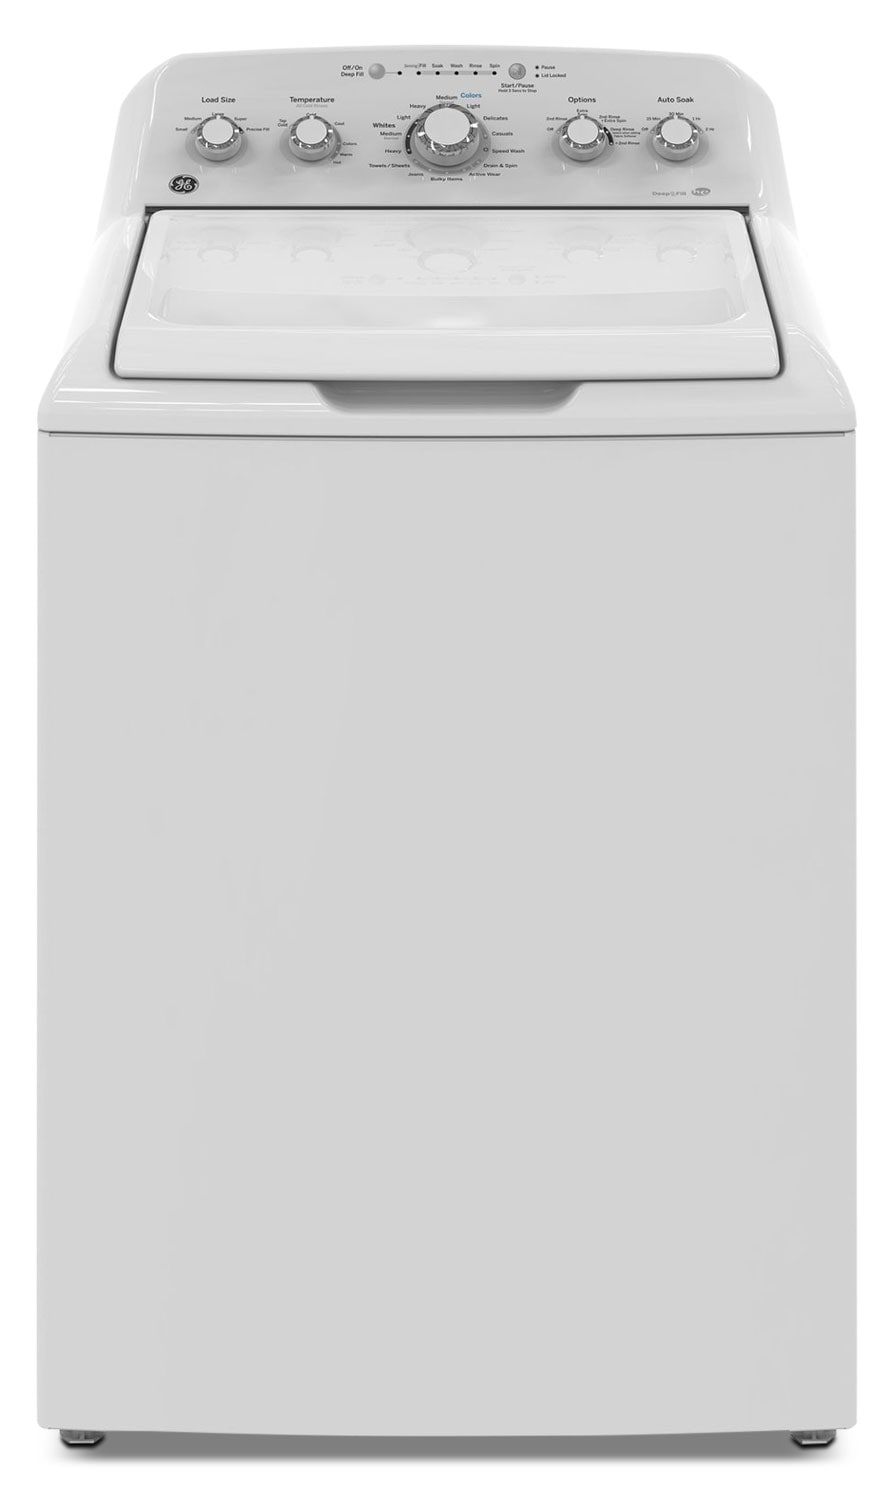 GE 4.9 Cu. Ft. Top-Load Washer – GTW460BMKWW